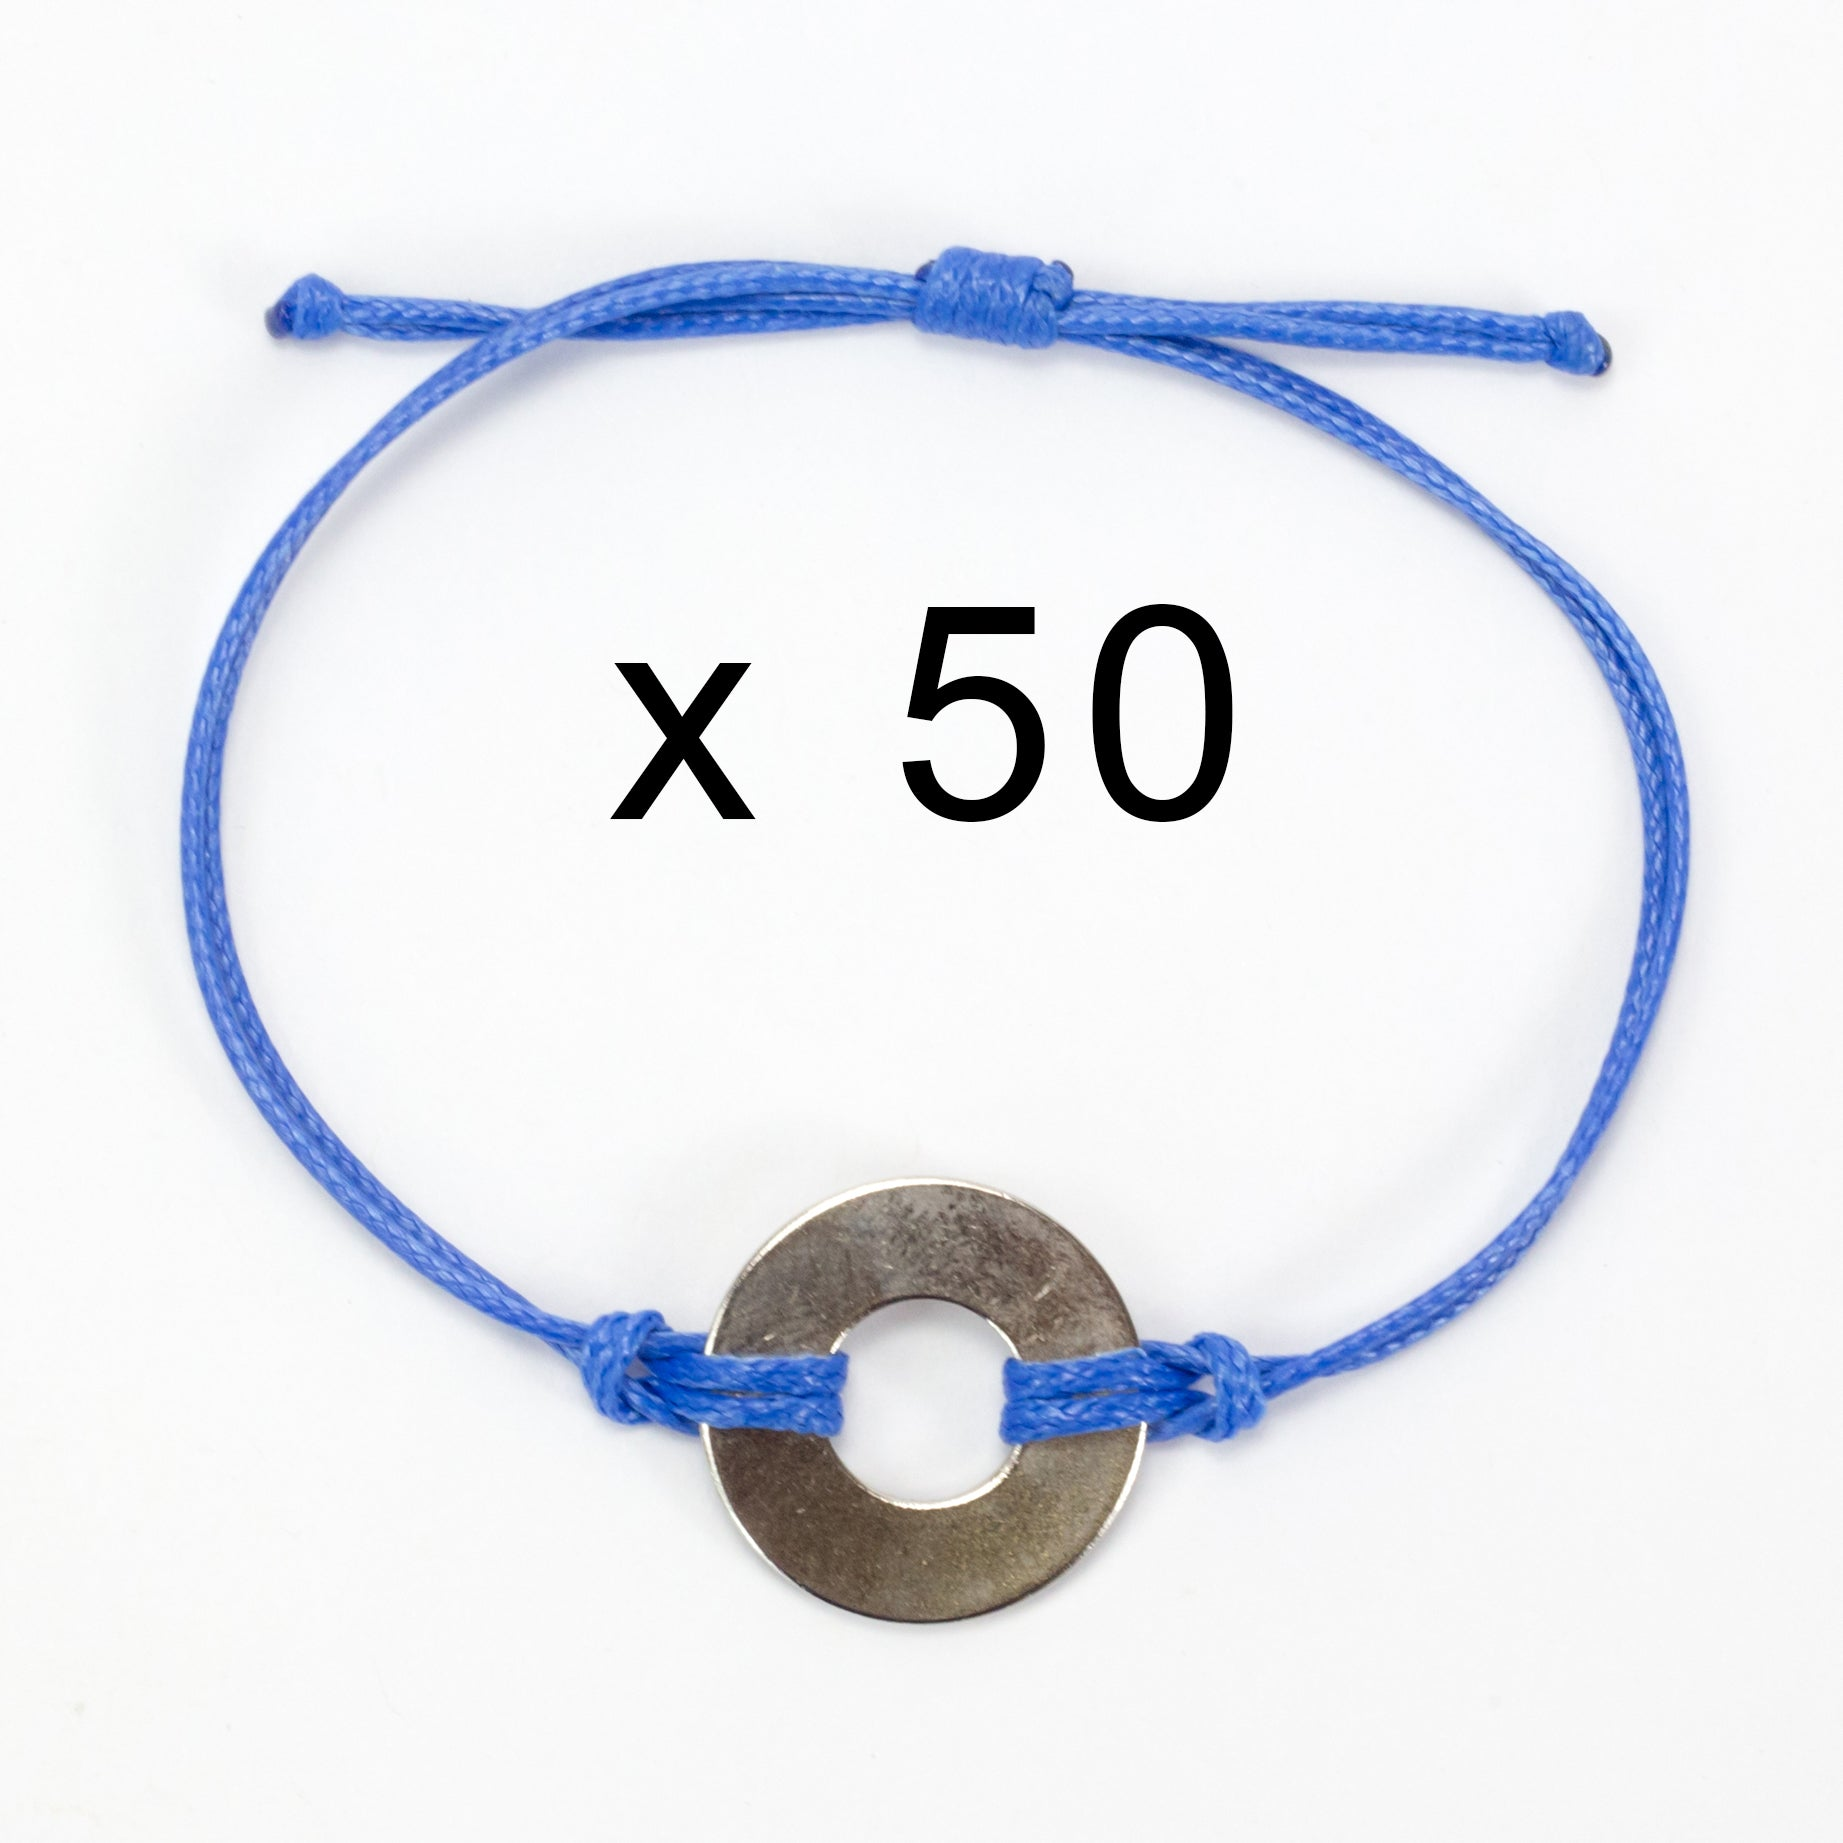 MyIntent Refill Classic Bracelets Blue String set of 50 with Nickel tokens